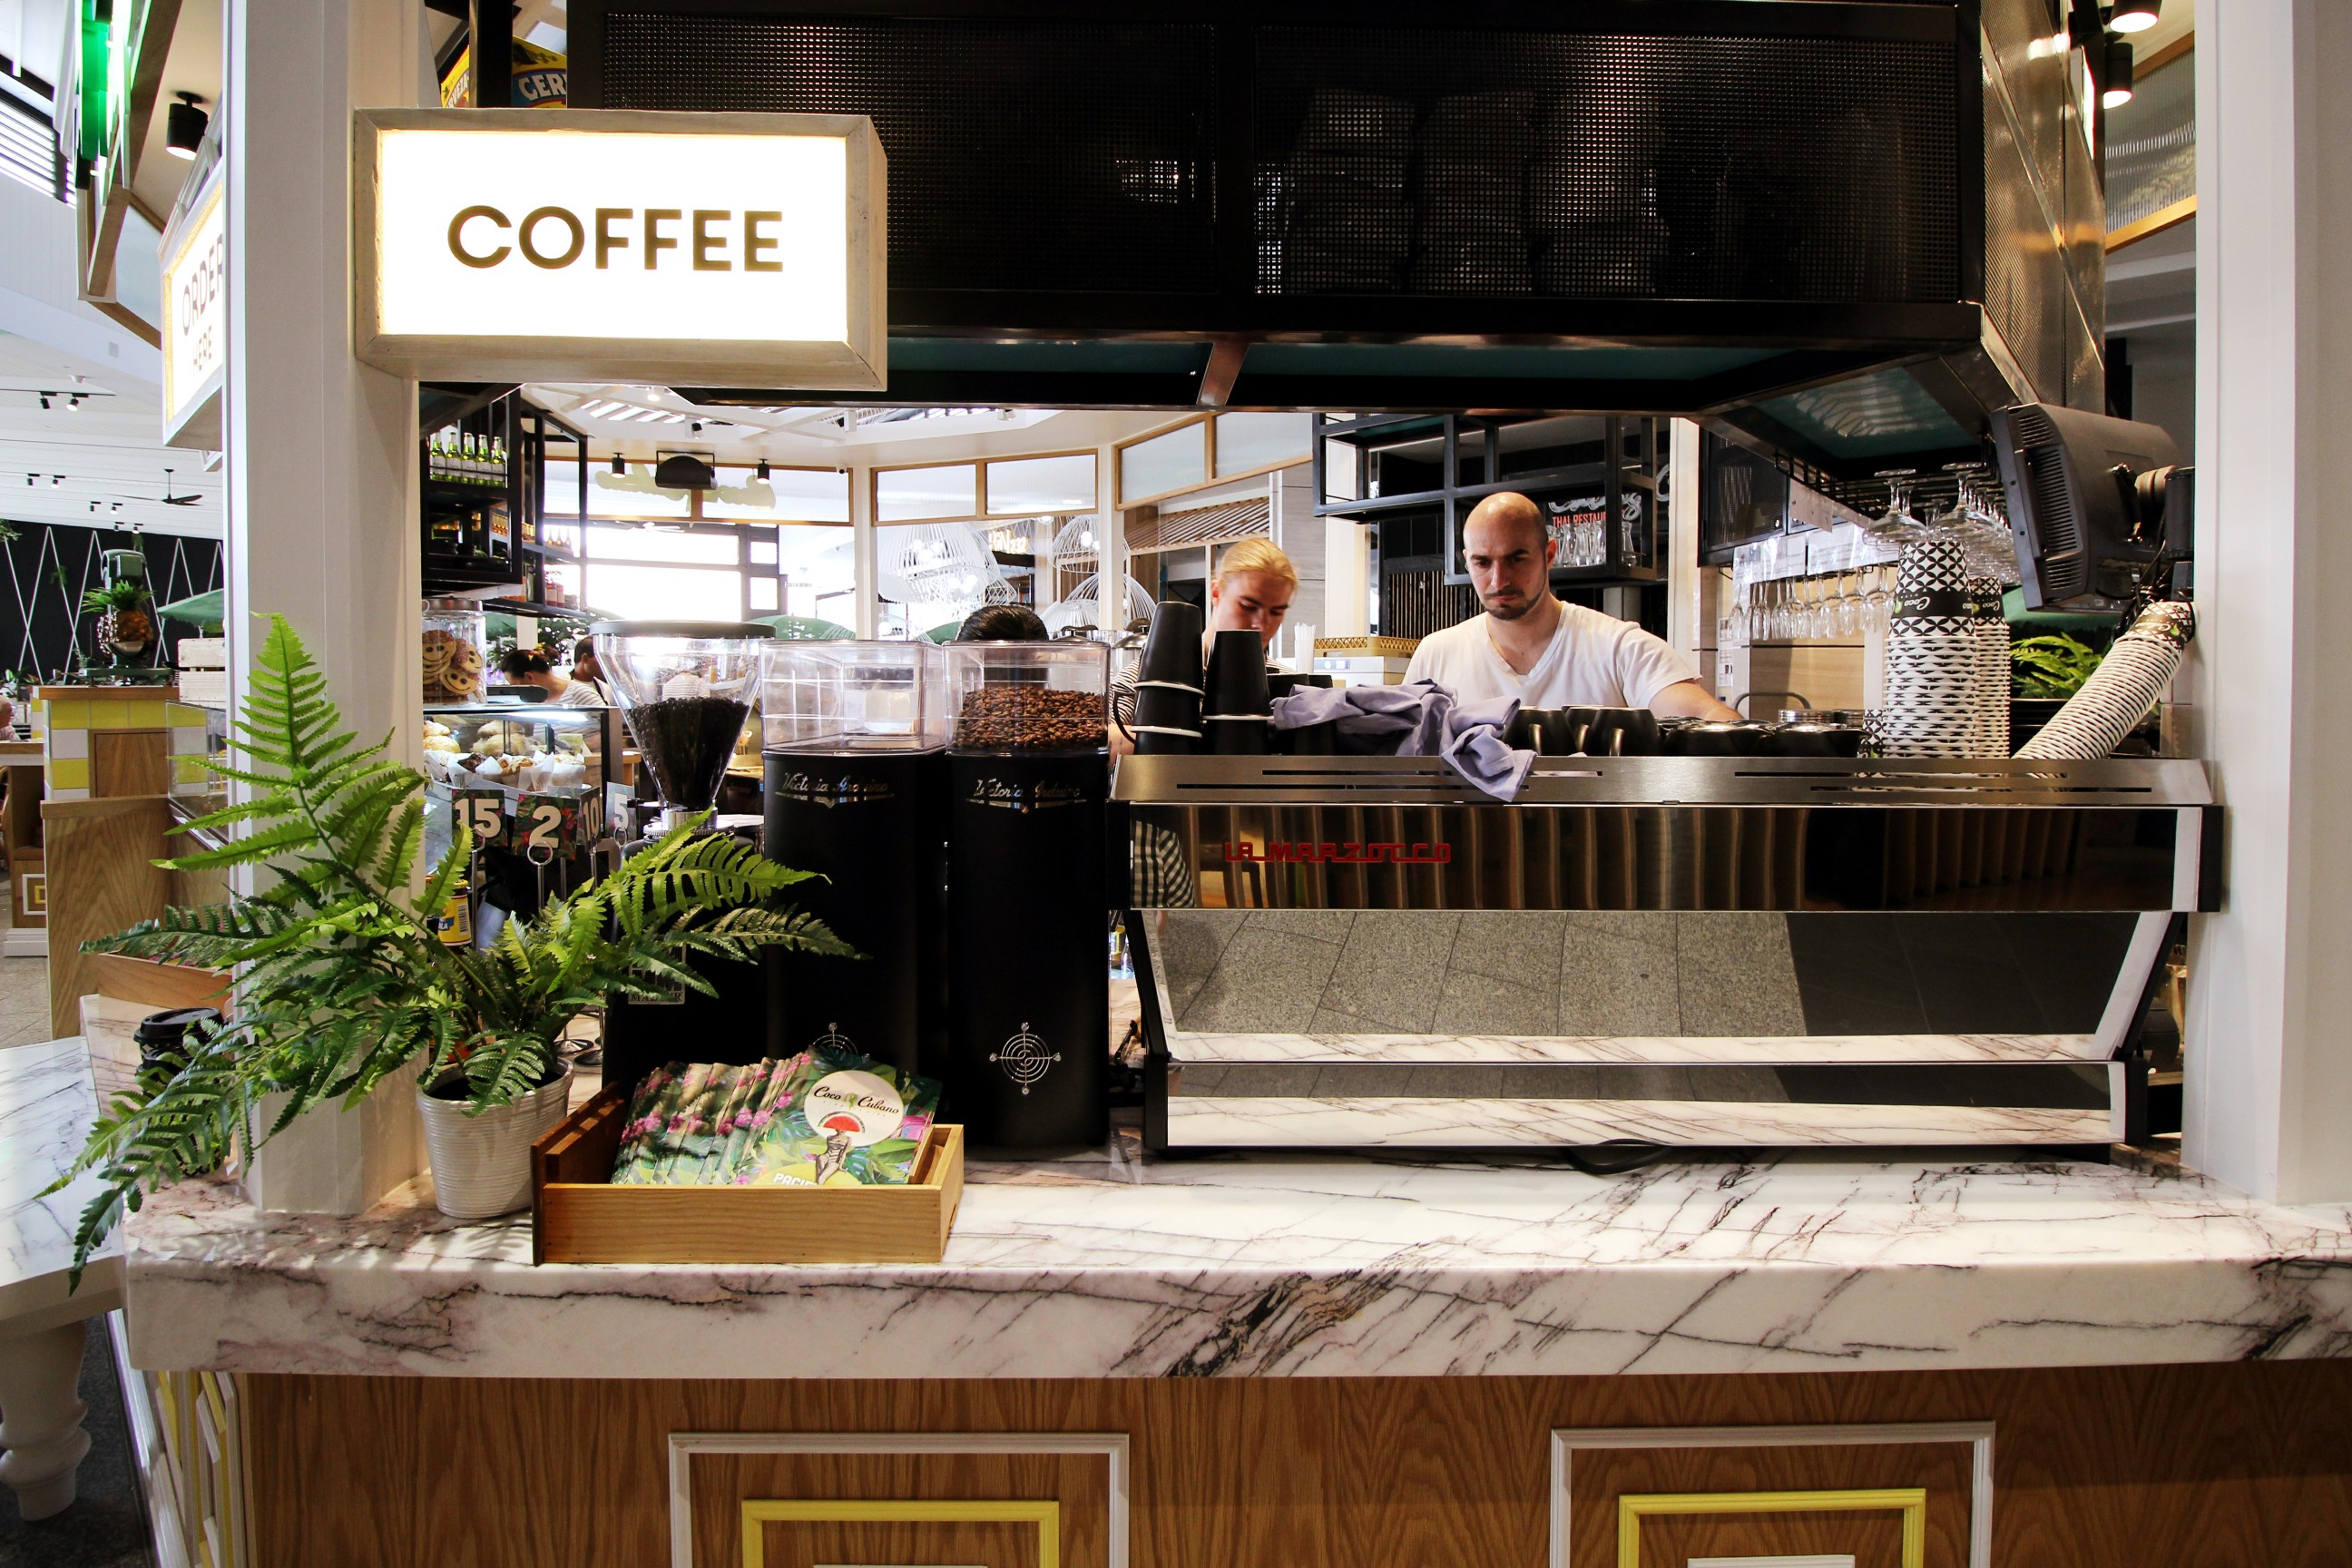 Coffee / Cafe Business for sale - Sunshine Plaza Franchise oppourtunity.